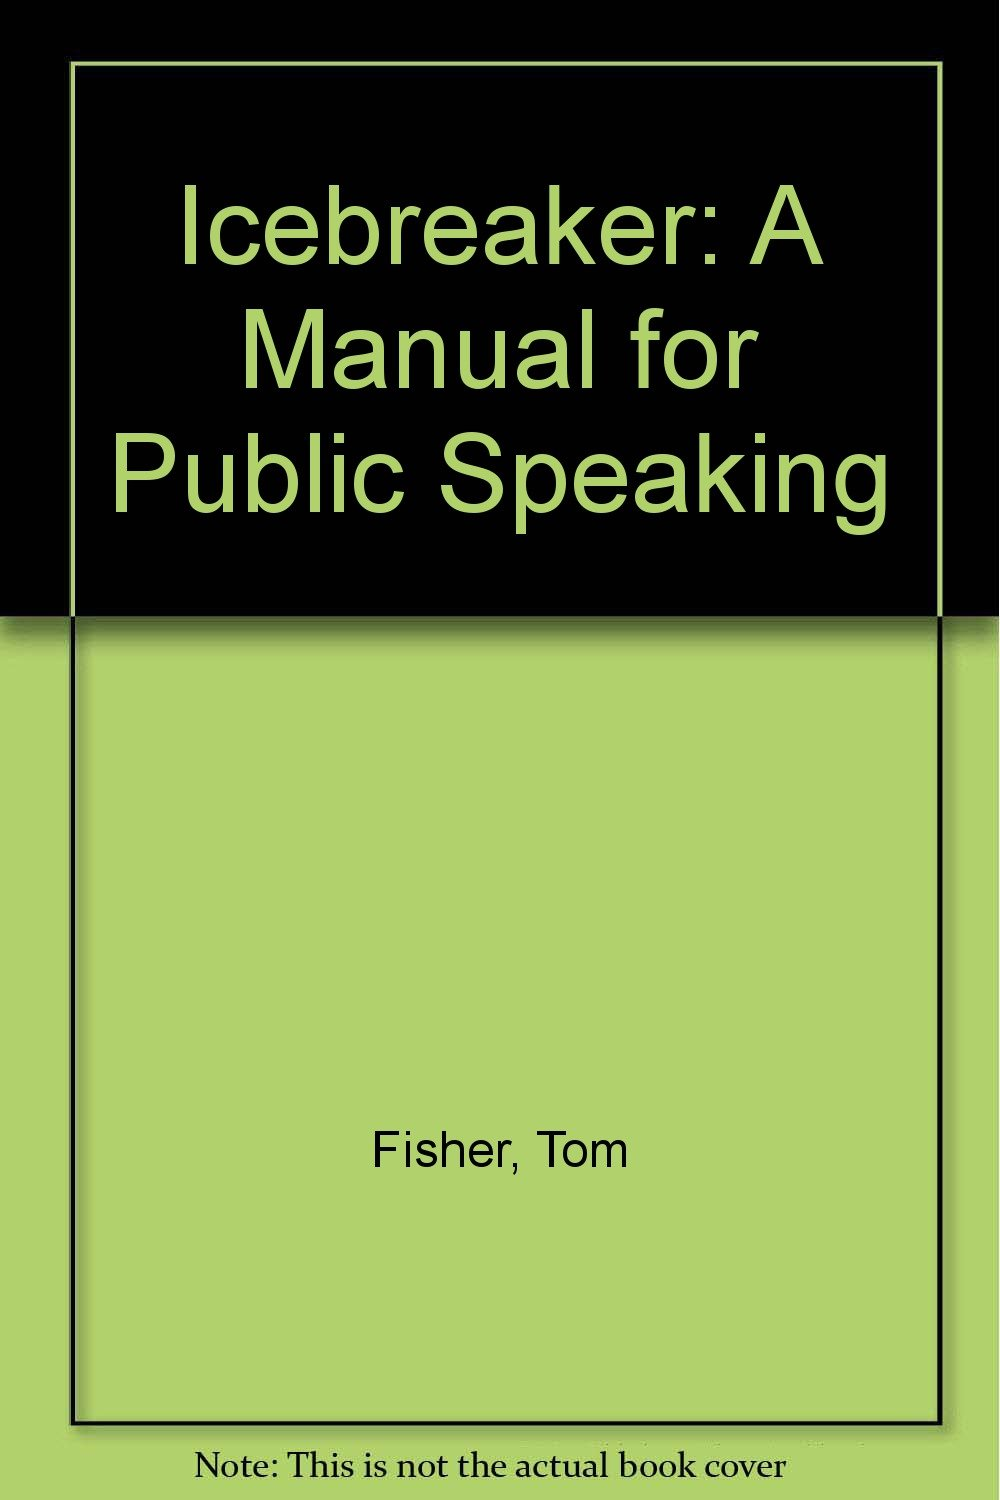 Amazon.in: Buy Icebreaker: A Manual for Public Speaking Book Online at Low  Prices in India | Icebreaker: A Manual for Public Speaking Reviews & Ratings